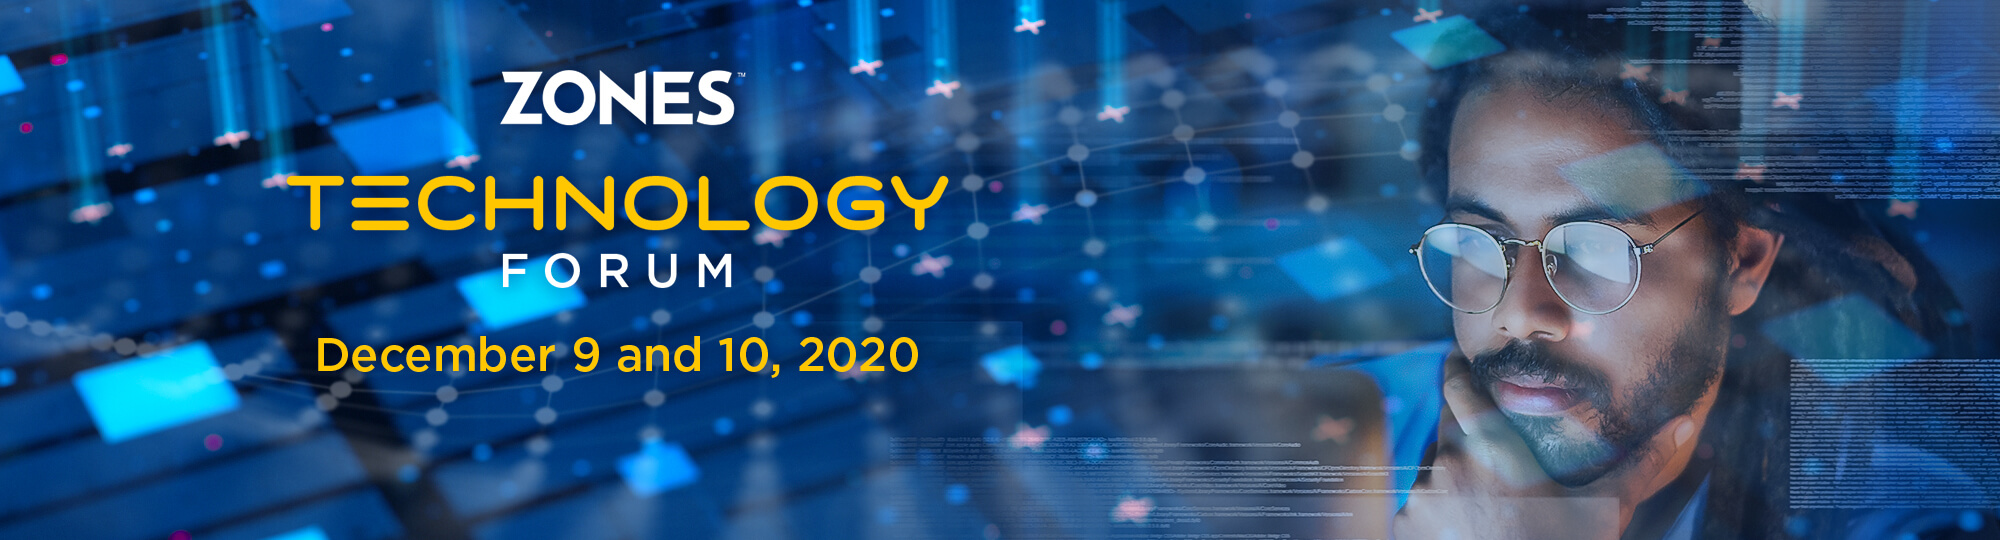 Register Now for Zones Technology Forum: December 9 and 10, 2020